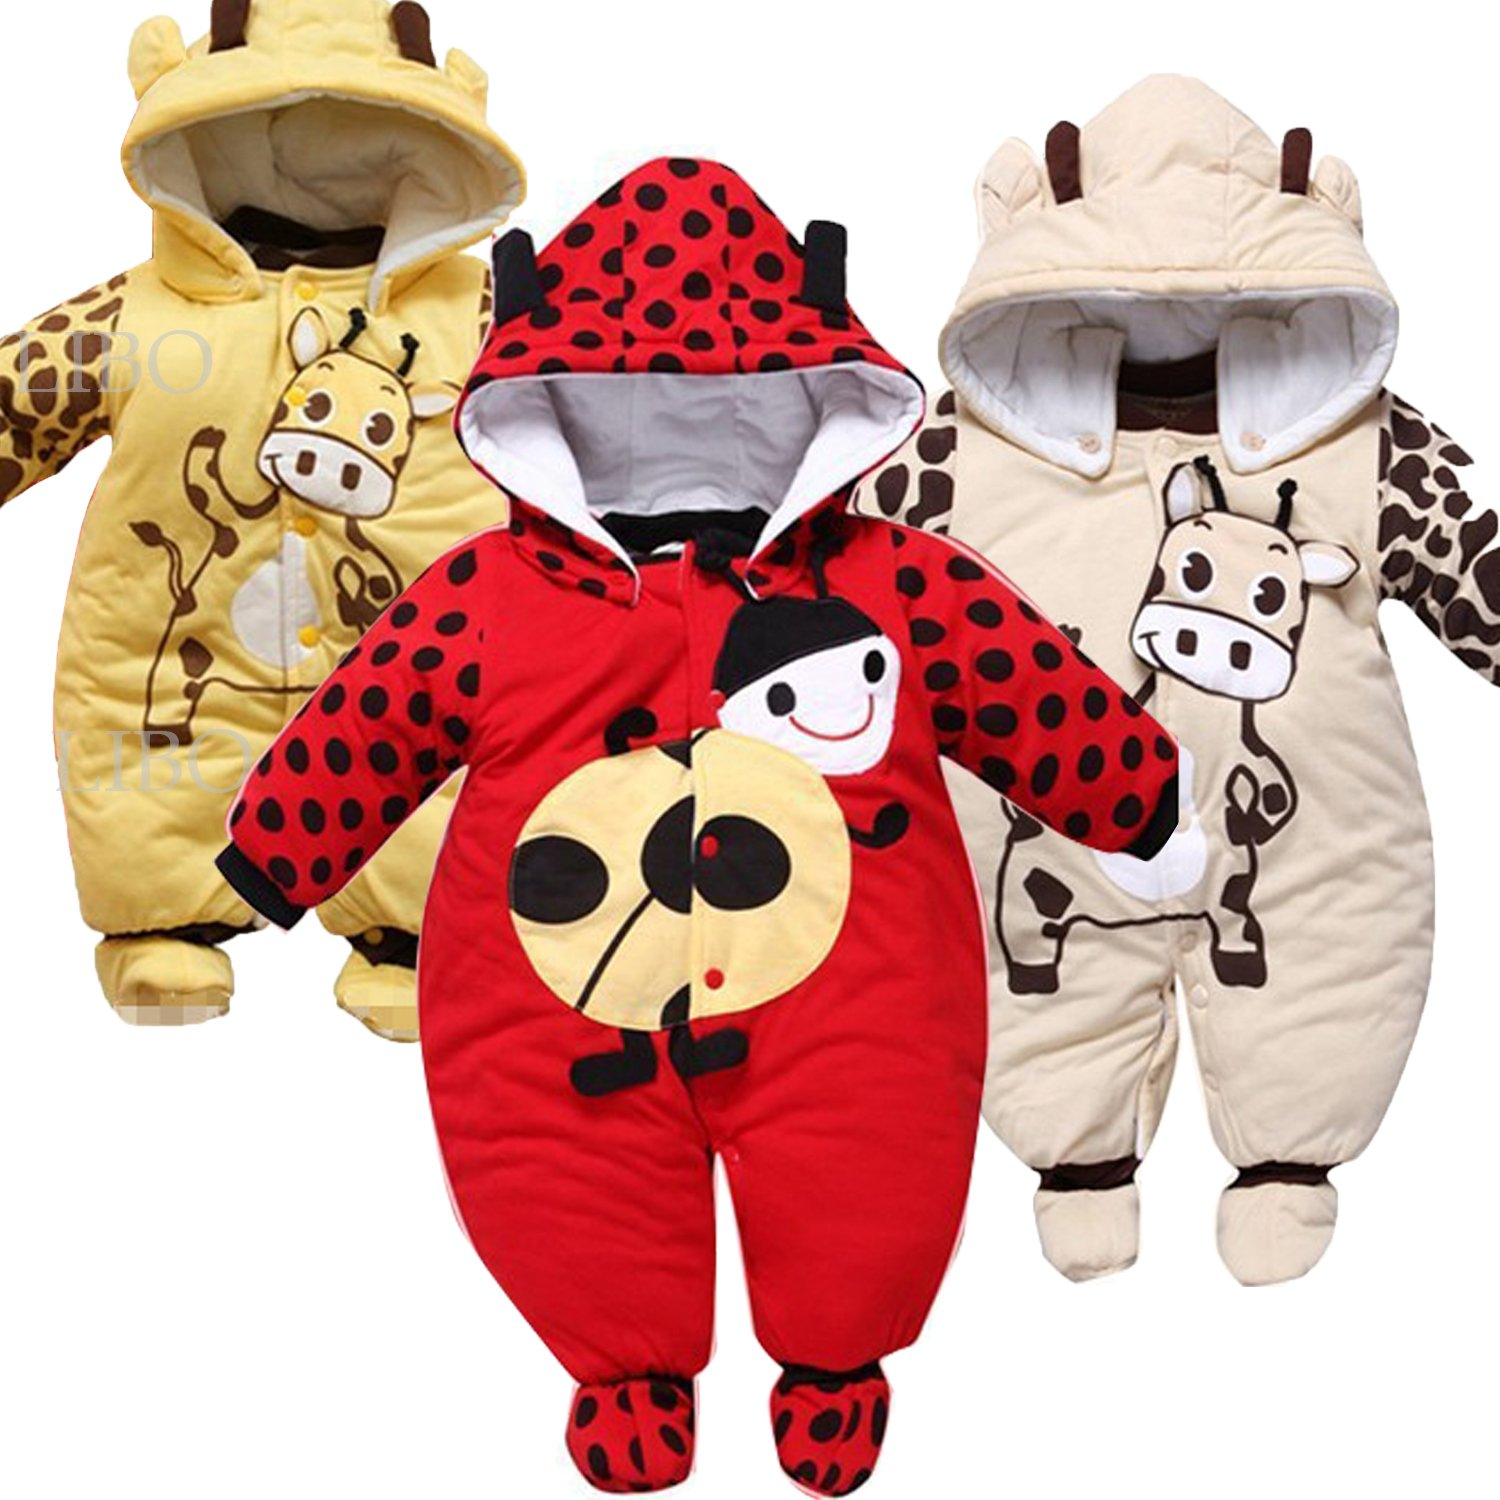 d007beb9e Newborn Baby Boy Girl Winter Jumpsuit Hooded Rompers Quilted Suit ...